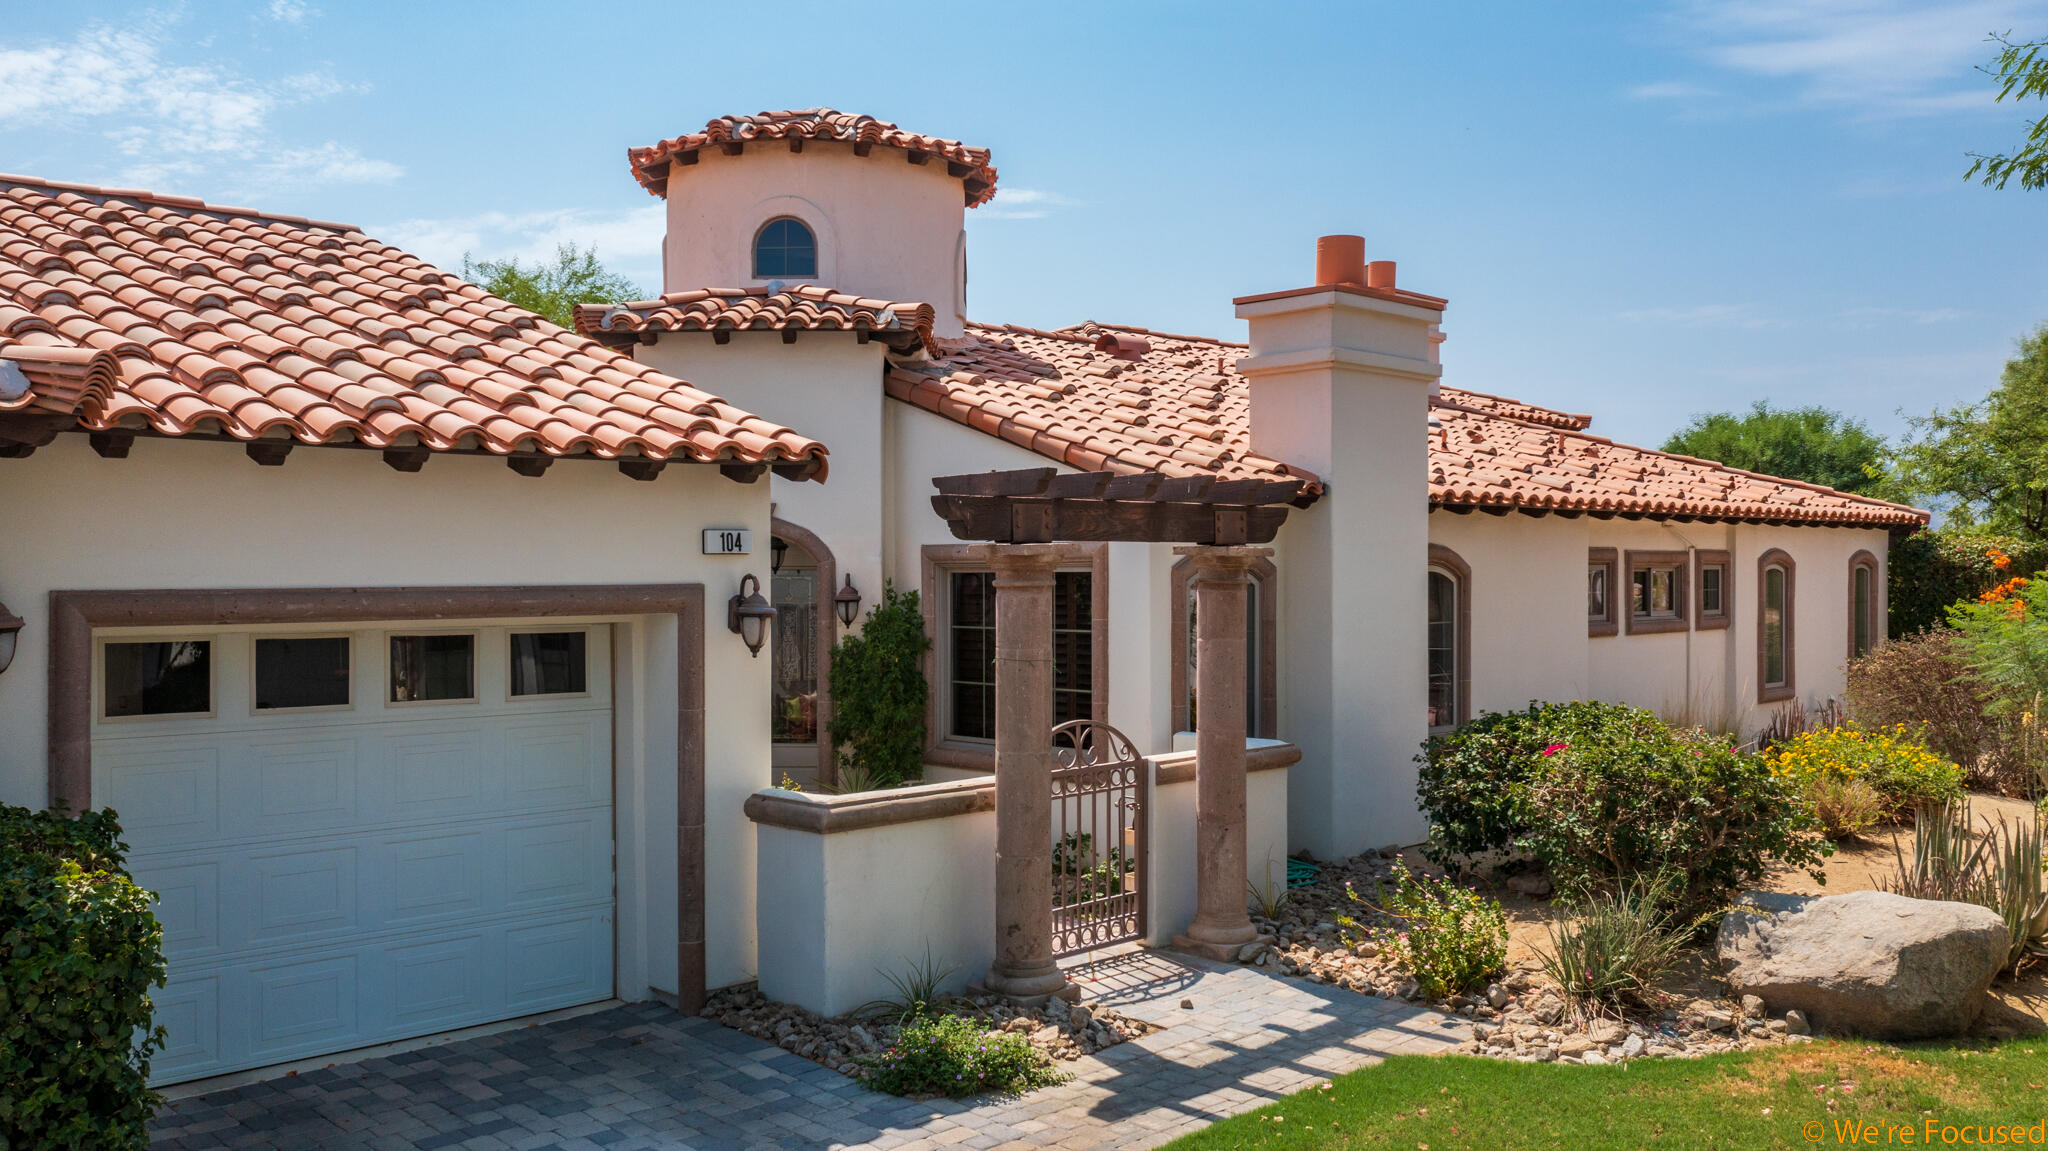 Welcome to Villa Portofino, the Desert's PREMIER 55 or better community located in the heart of Palm Desert. 104 Piazza Perrone is sure to impress the most discerning buyers.  This Vinci floor plan is the largest floor plan of the 36 original single level homes in the community. High coffered ceilings throughout, solid maple cabinetry in kitchen, bathrooms and expansive built-in bookshelves in den, wet bar, two car tandem garage with golf cart and full size garage doors with direct access to home, new carpet in guest bedroom and den, closets by California Closets, recently painted, sparkling Travertine floors, two patios with coveted SOUTHERN exposure for those breathtaking mountain views. The kitchen is stunning with pull outs in all cabinets plus a new stainless-steel range, oven, microwave, refrigerator and dishwasher and even a brand new sink!! Special bonus - this one has TWO fireplaces! BEST location in community as this former model home is situated in the first cul-de-sac next to clubhouse! Just a stone's throw from your front door and you are catching a movie in the onsite theater, having a cocktail at happy hour, dancing the night away at supper club, enjoying an aquatic class in the morning or taking a yoga class in the yoga studio. HOA includes, Cable, Internet, Earthquake Insurance, roofs, clubhouse, gas and more